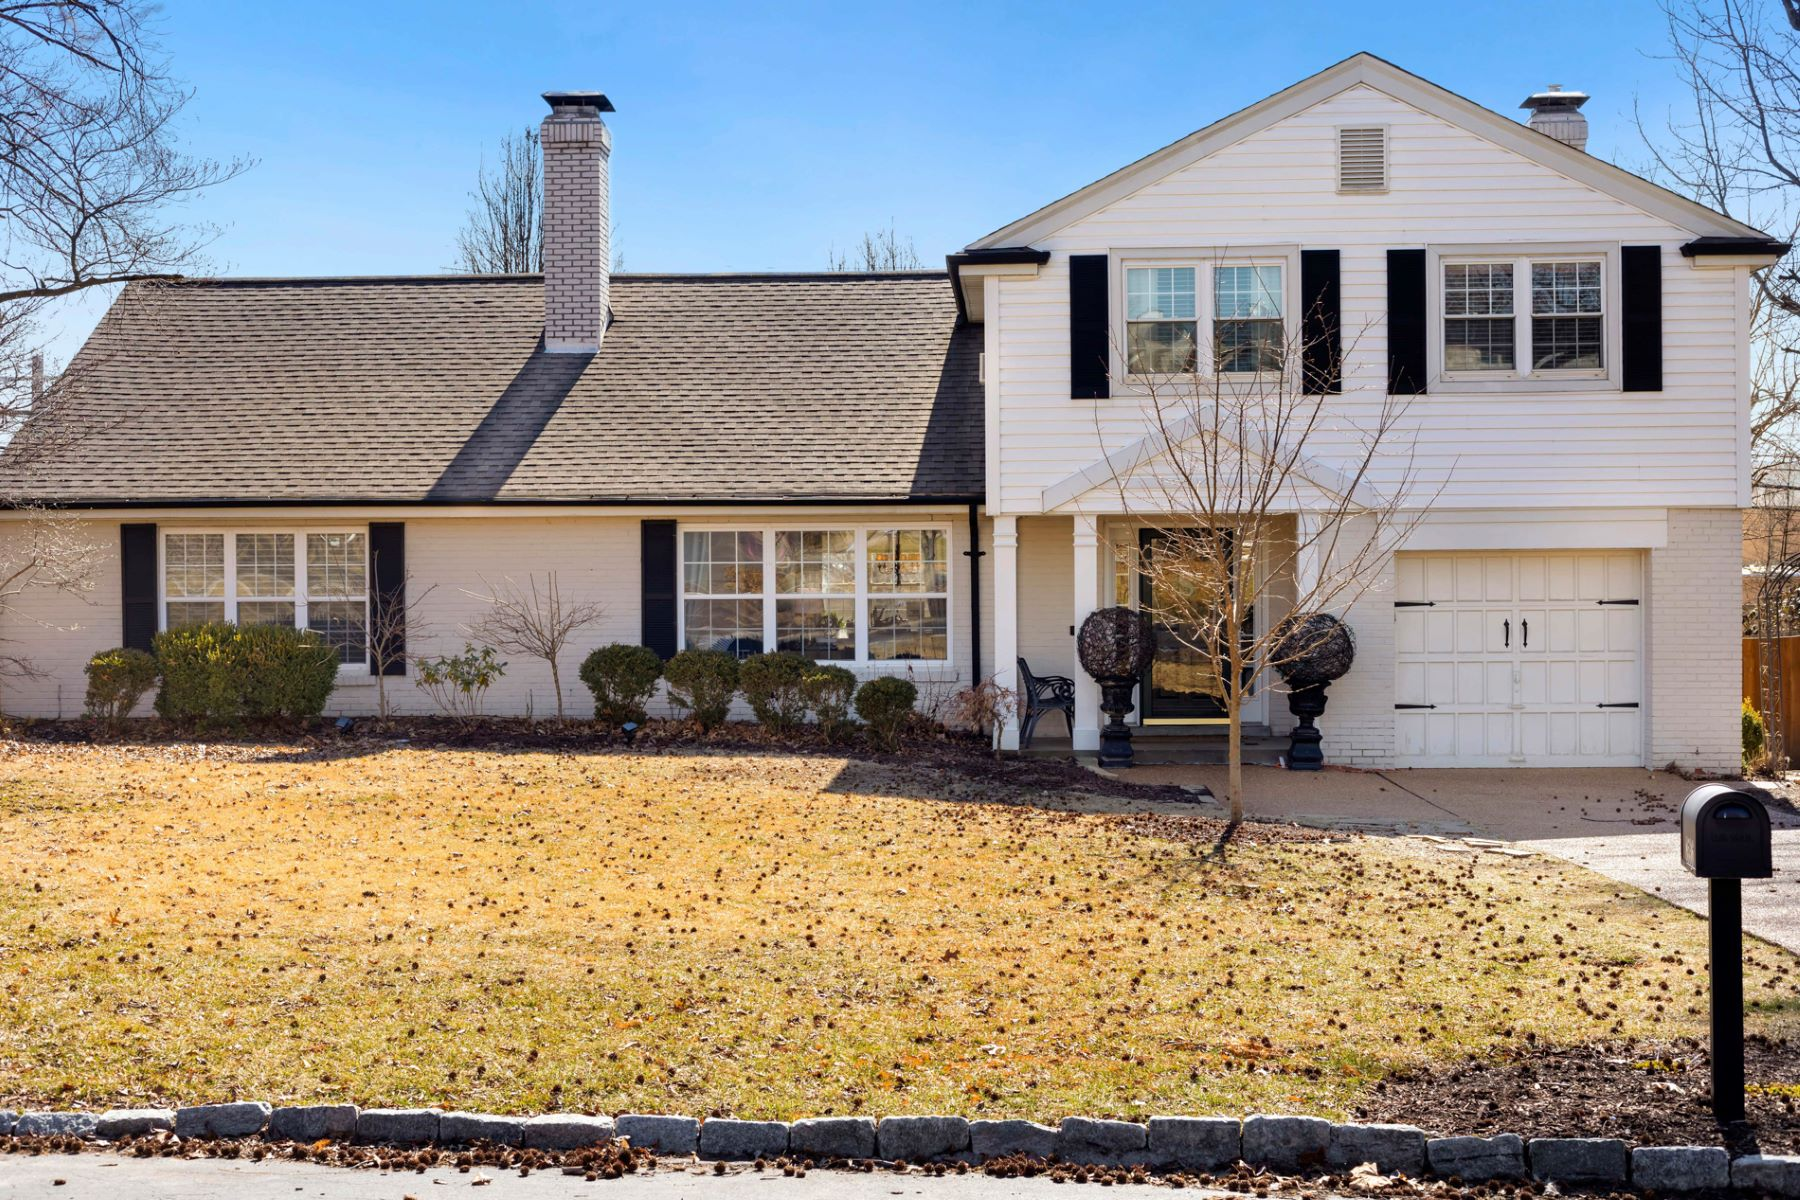 Single Family Home for Sale at 8536 Colonial Lane Ladue, Missouri 63124 United States